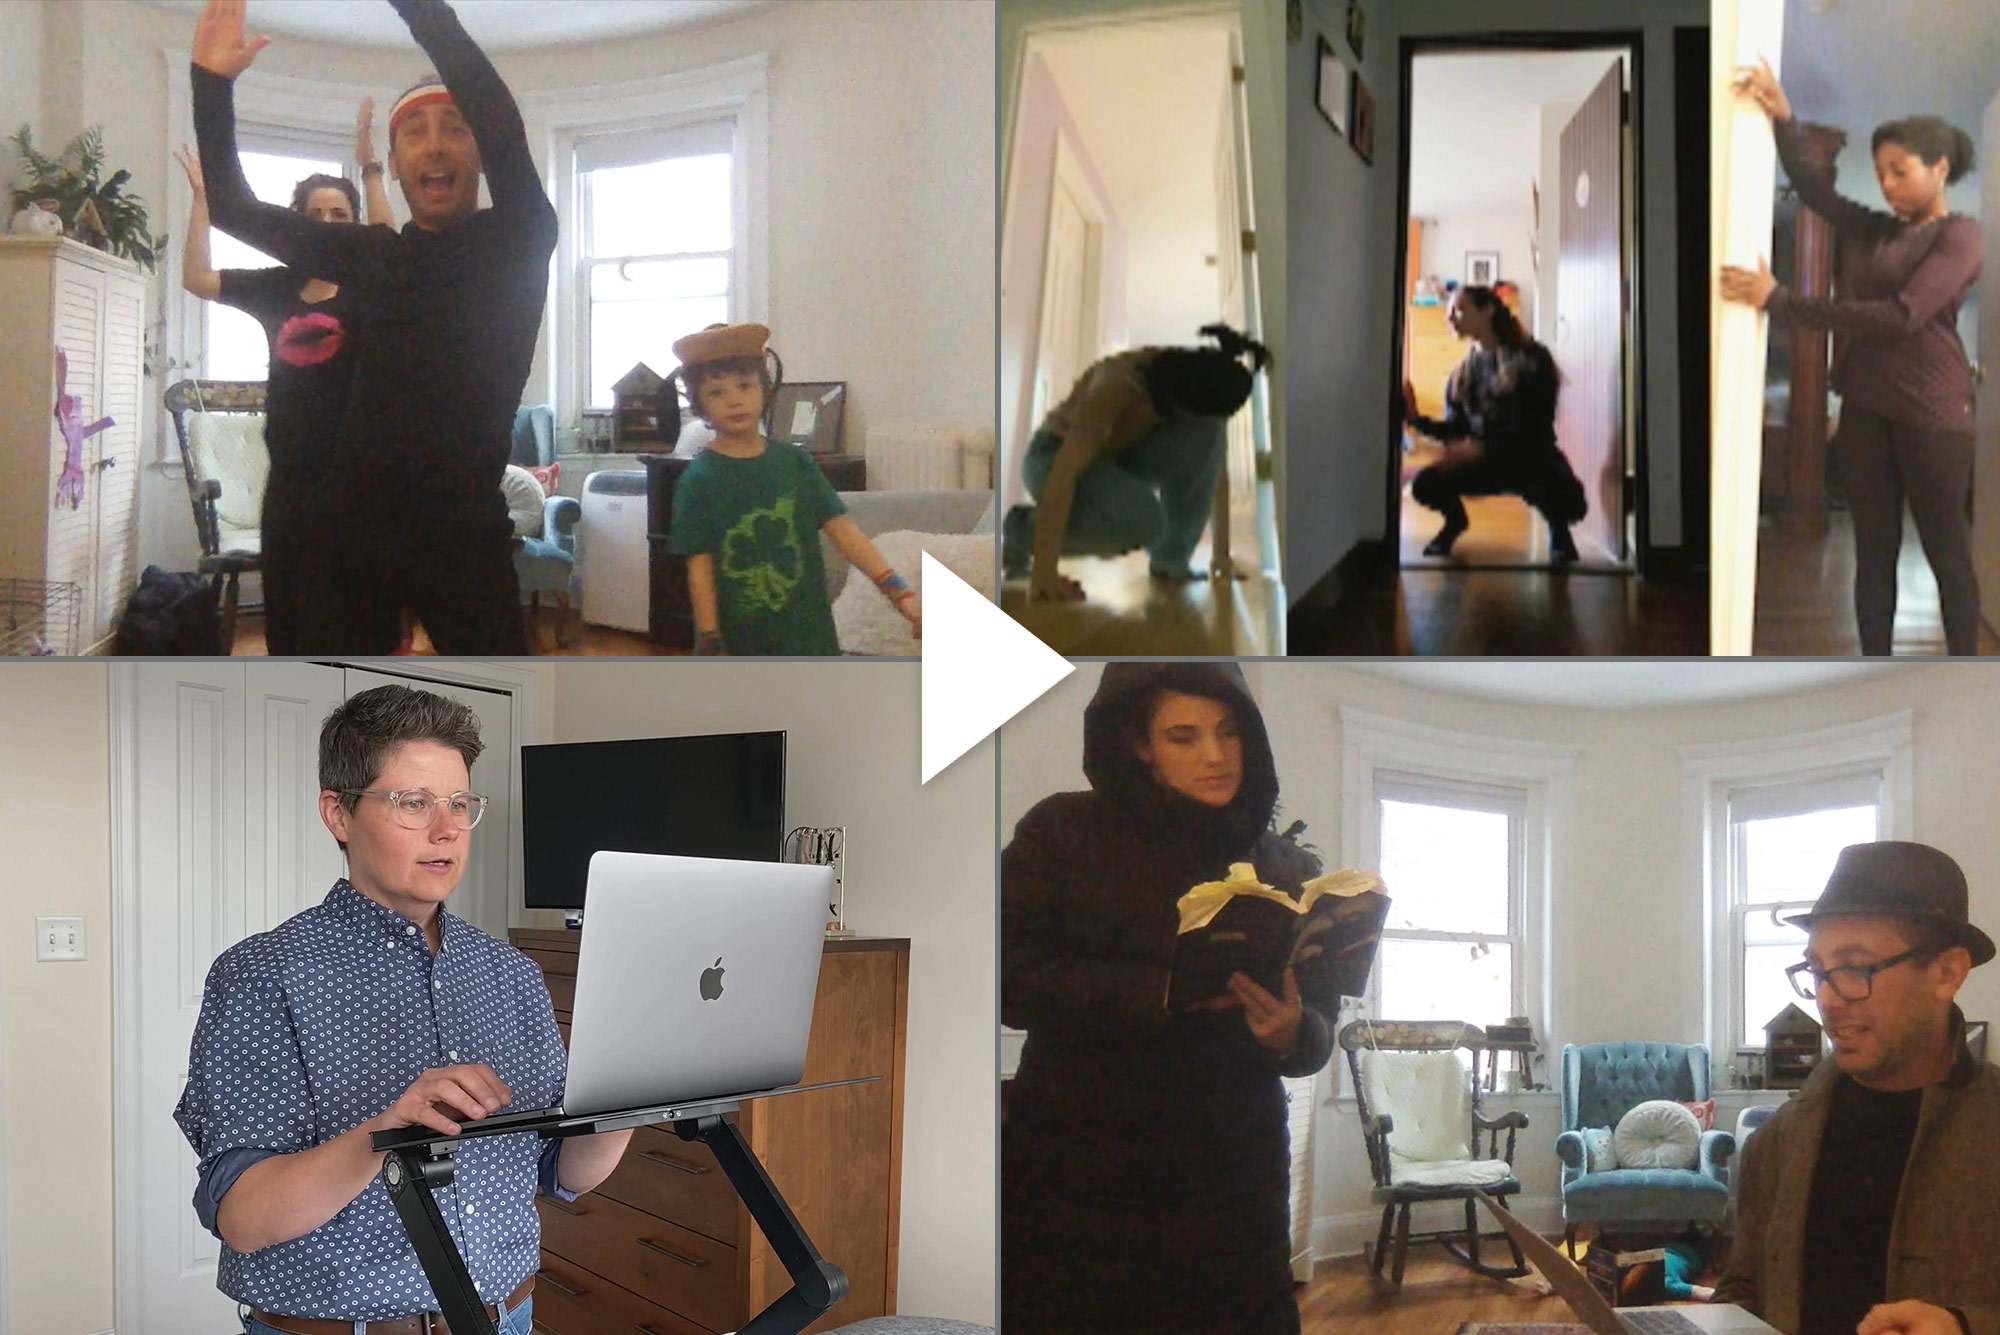 Composite image of stills from videos of BU classes being taught remote. In the bottom left, Maura Smith, a College of Communication master lecturer in film, is seen standing at a standing desk. In the top left and bottom right, Yo-EL Cassell, a College of Fine Arts assistant professor of movement, reads from a computer and demonstrates movements. In the top right, students for Yo-EL's class are seen moving in door frames.